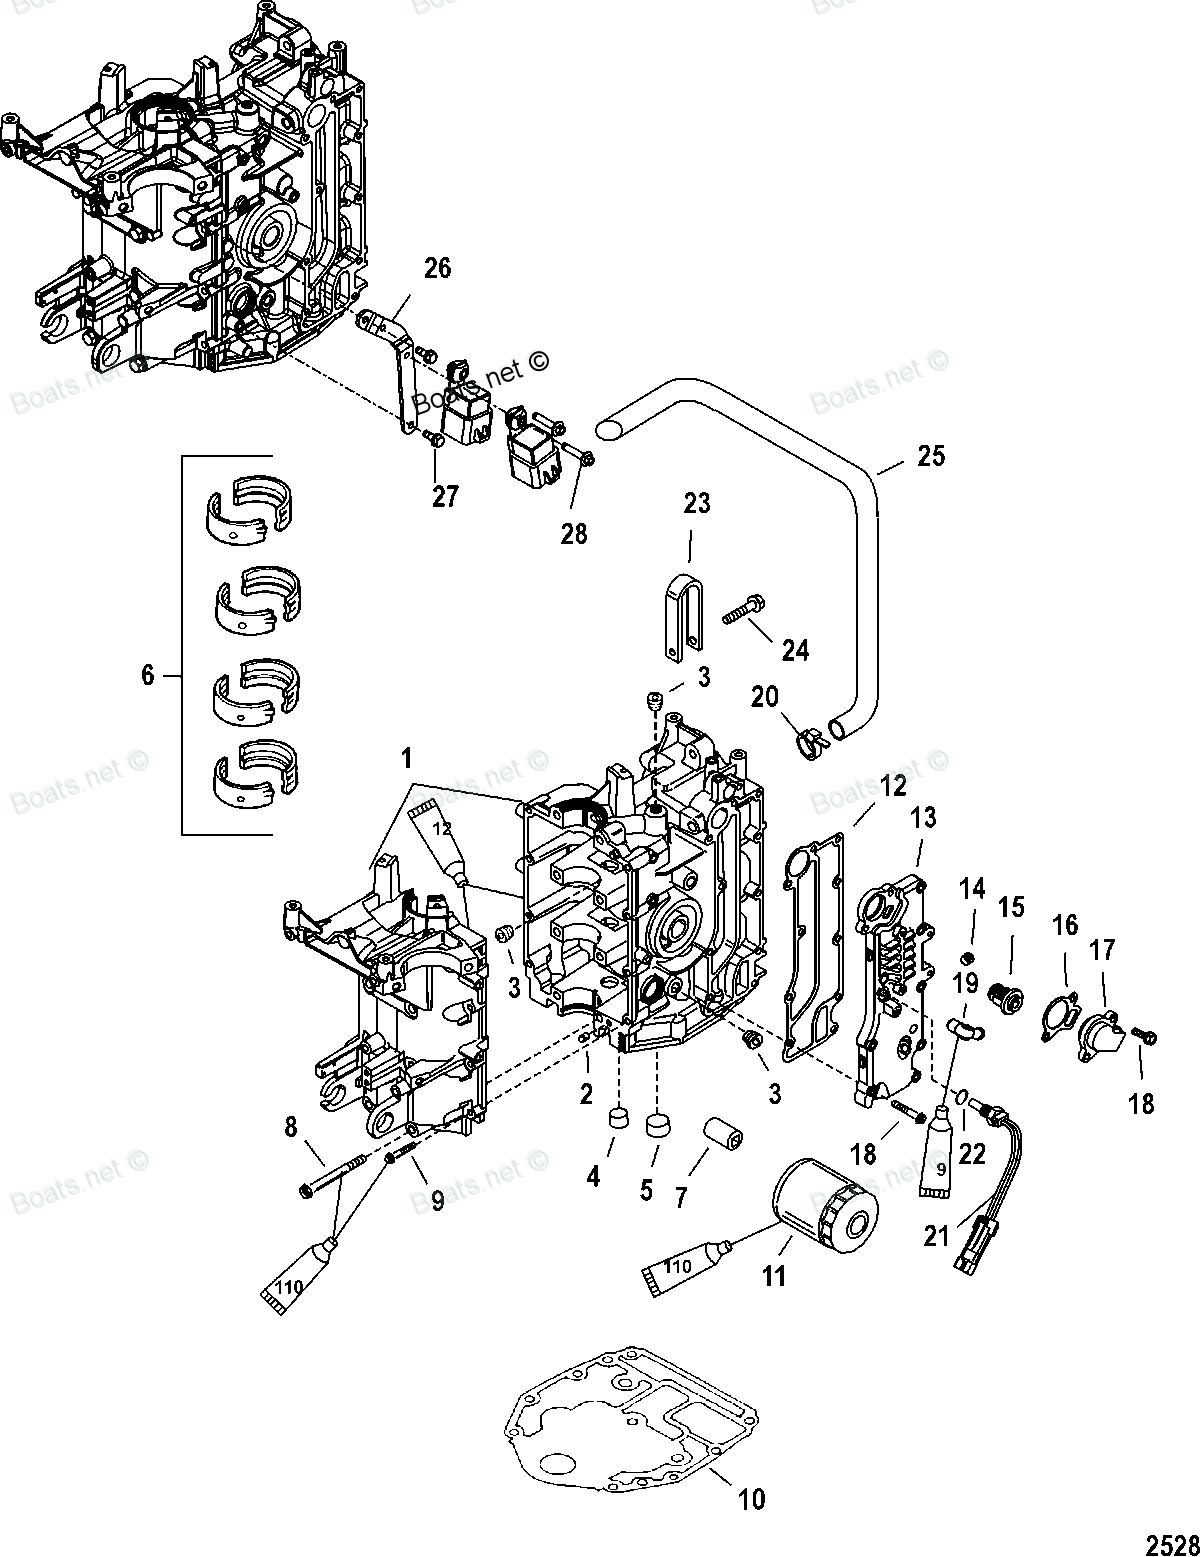 Diagram of 40 Carb (3 CYL.)(4-STROKE) Mercury Outboard 0T409000 THRU 1B226999 Cylinder Block Diagram and Parts